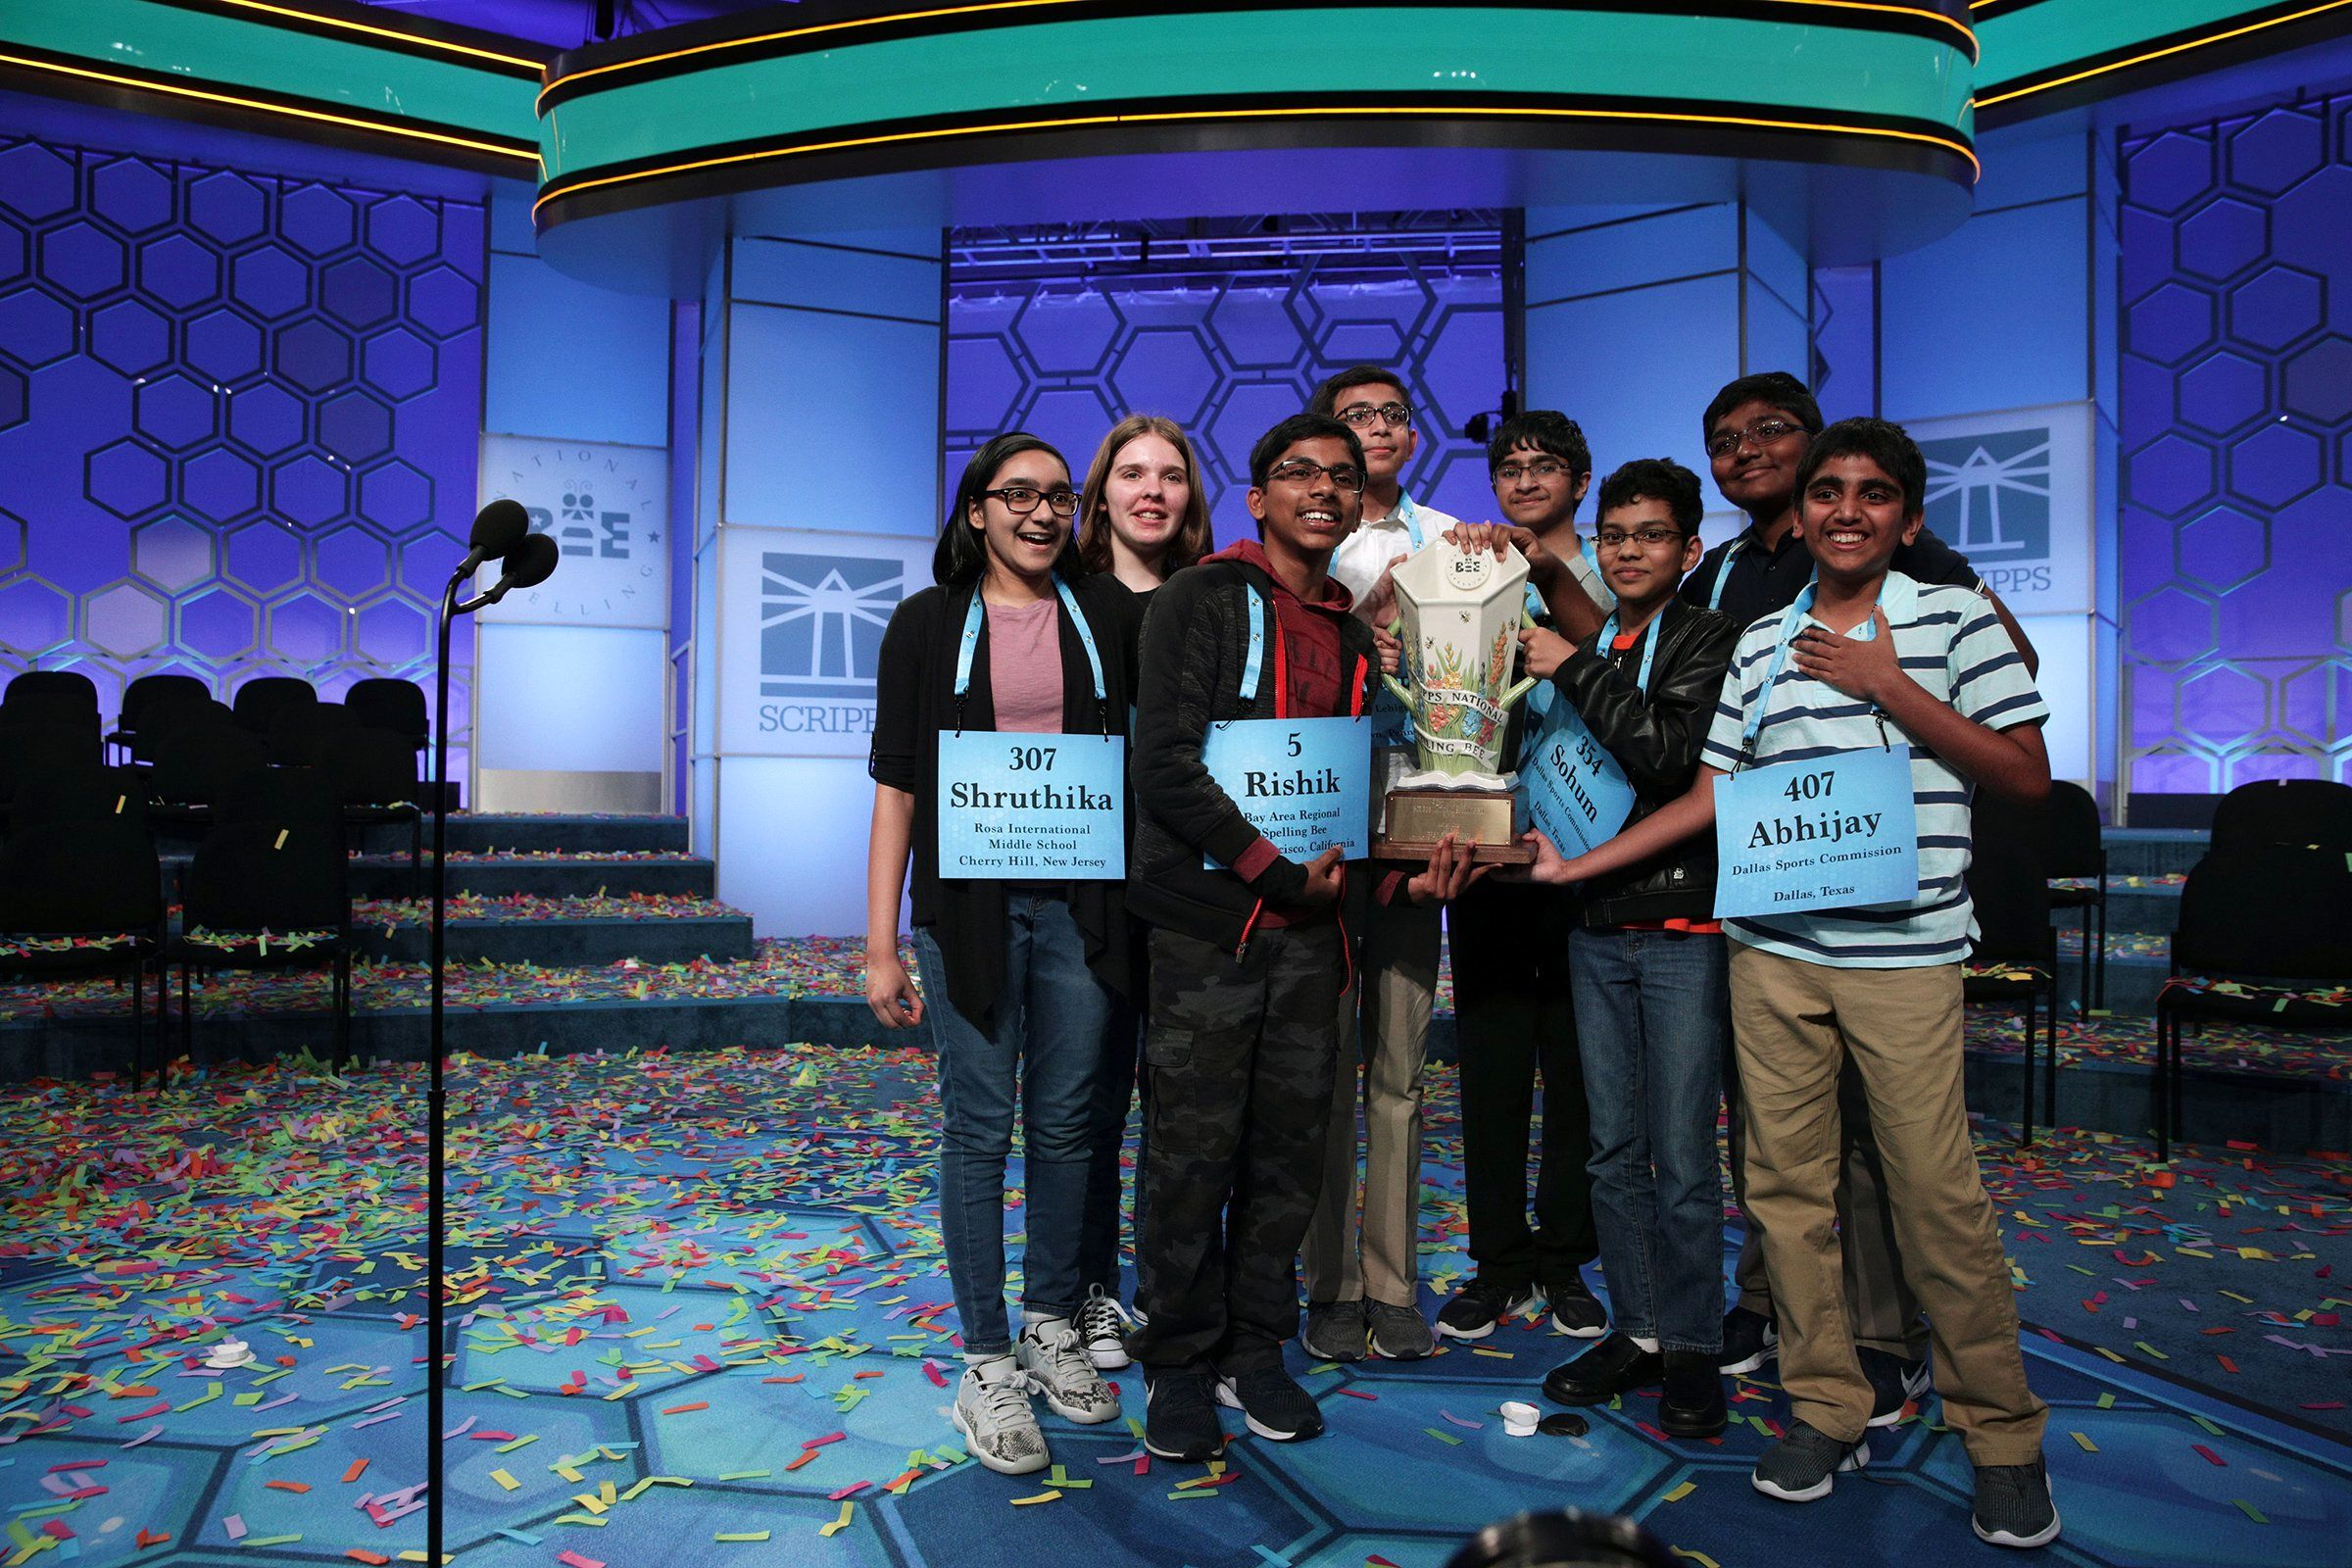 History was made at the Scripps National Spelling Bee in May. Eight winners—the event's most co-champions ever—hold the trophy after 20 rounds of competition.